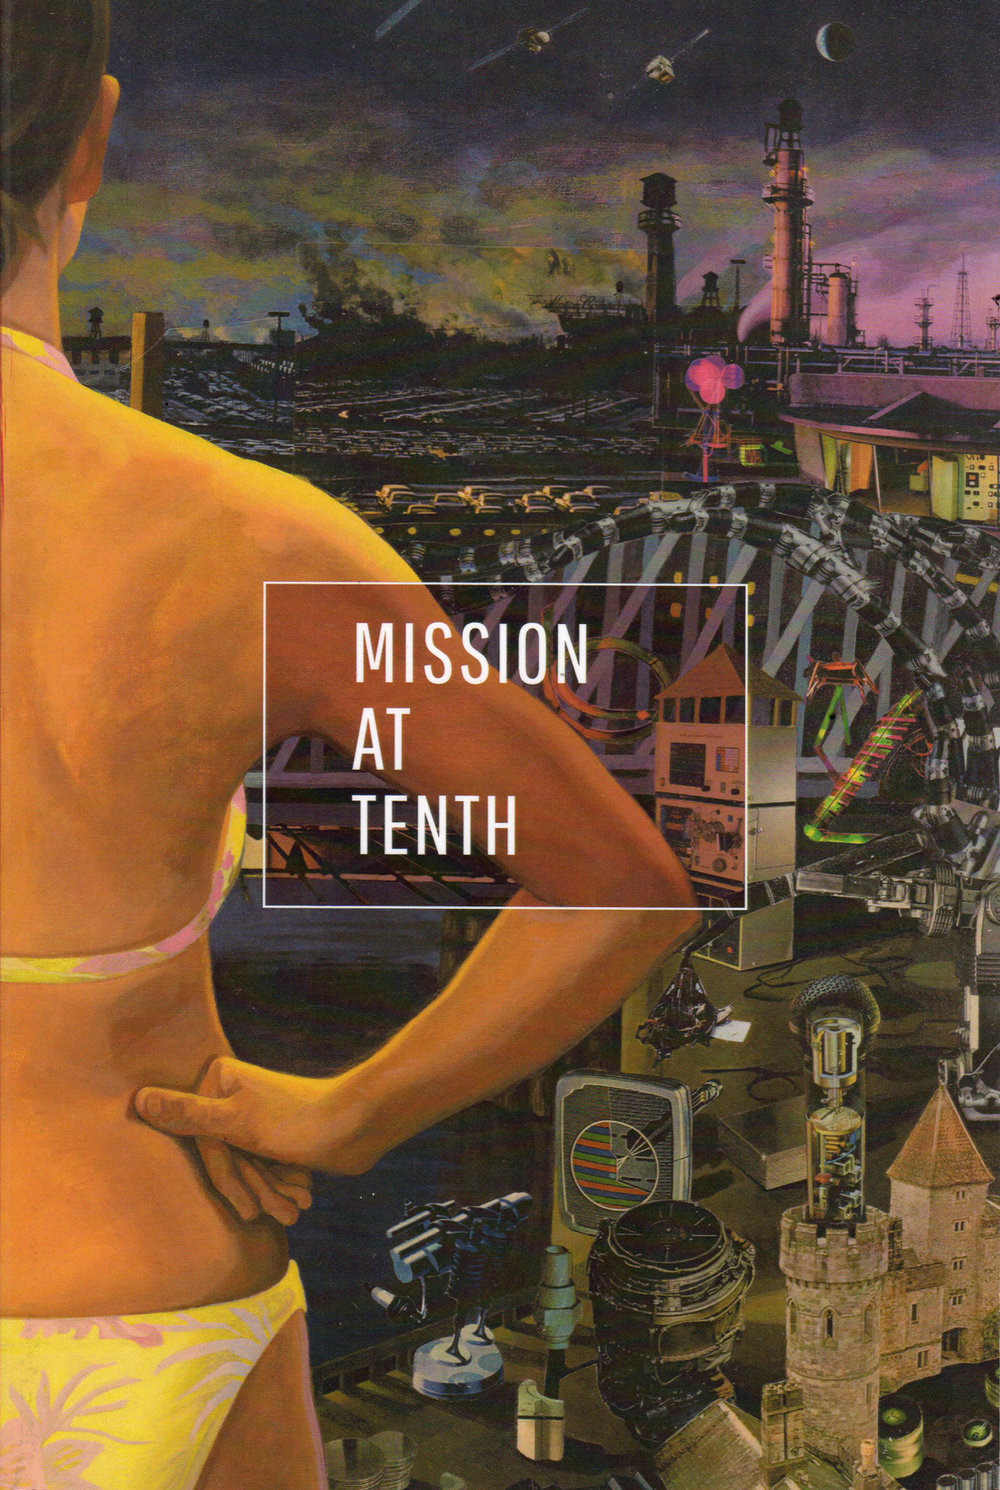 Randall Babtkis,. Mission at Tenth, vol. 5, 2014, California Institute of Integral Studies Press : San Francisco.